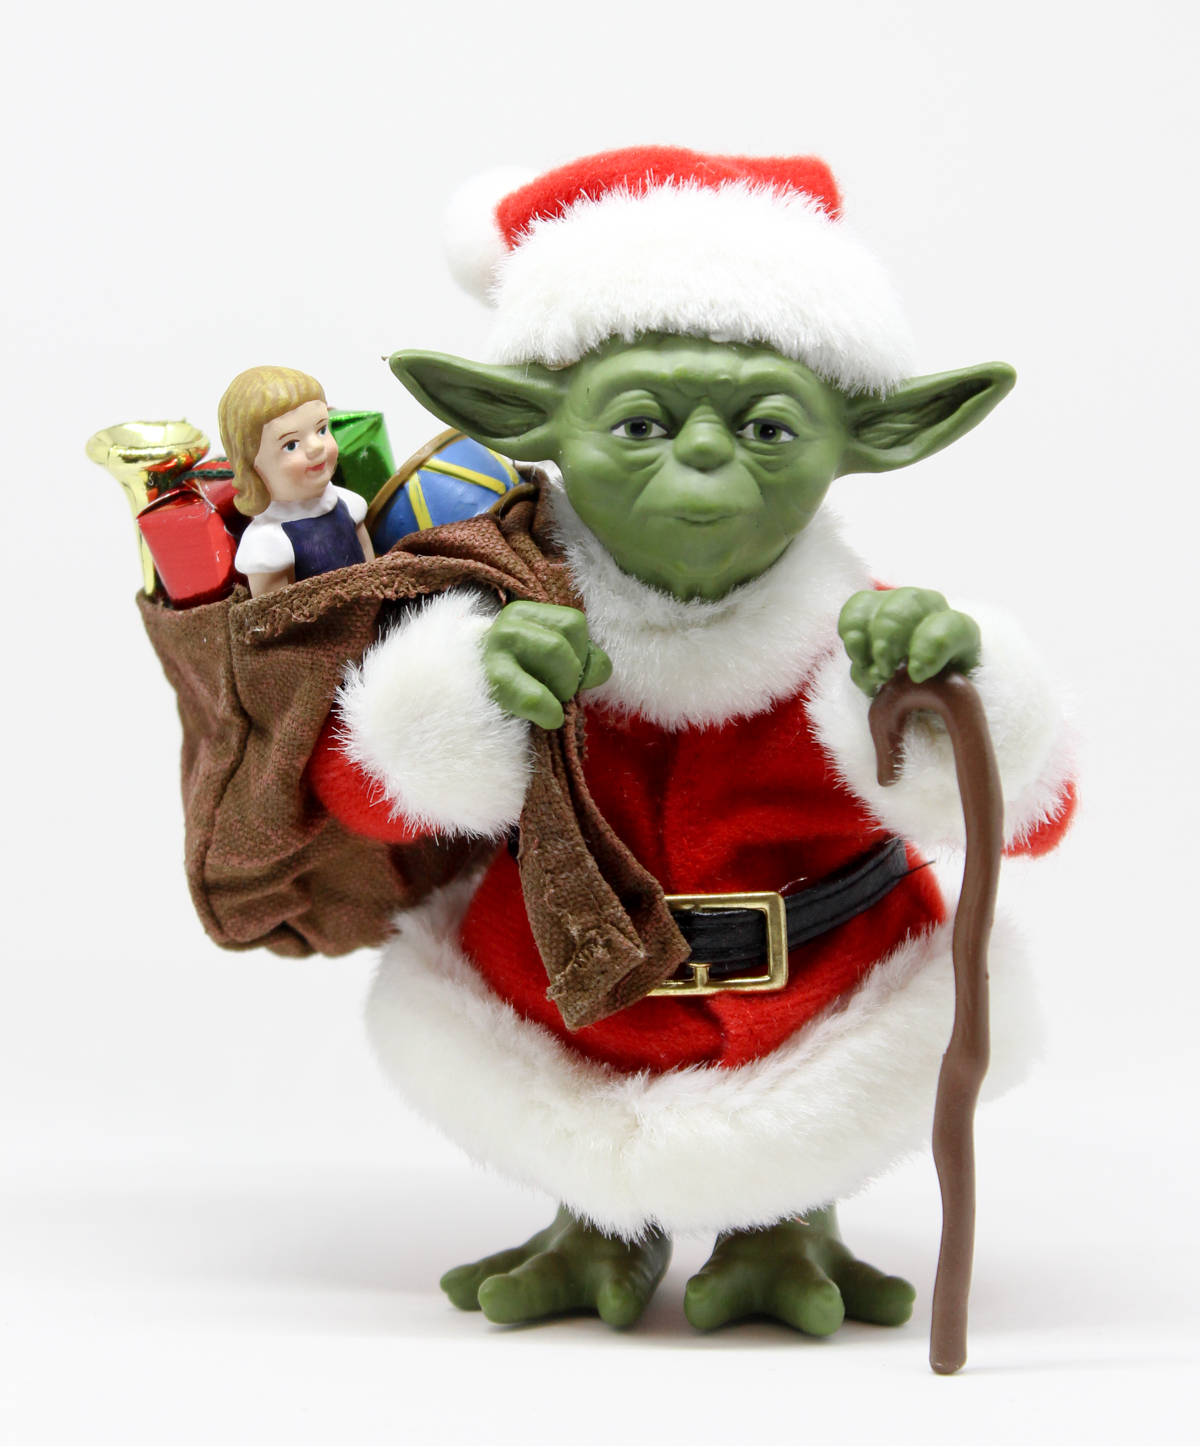 37d5407b18ed2 Celebrate Life Day in July with the latest entry in our Toy Guide  Kurt S.  Adler s Santa Yoda Hand-Crafted Fabriché.